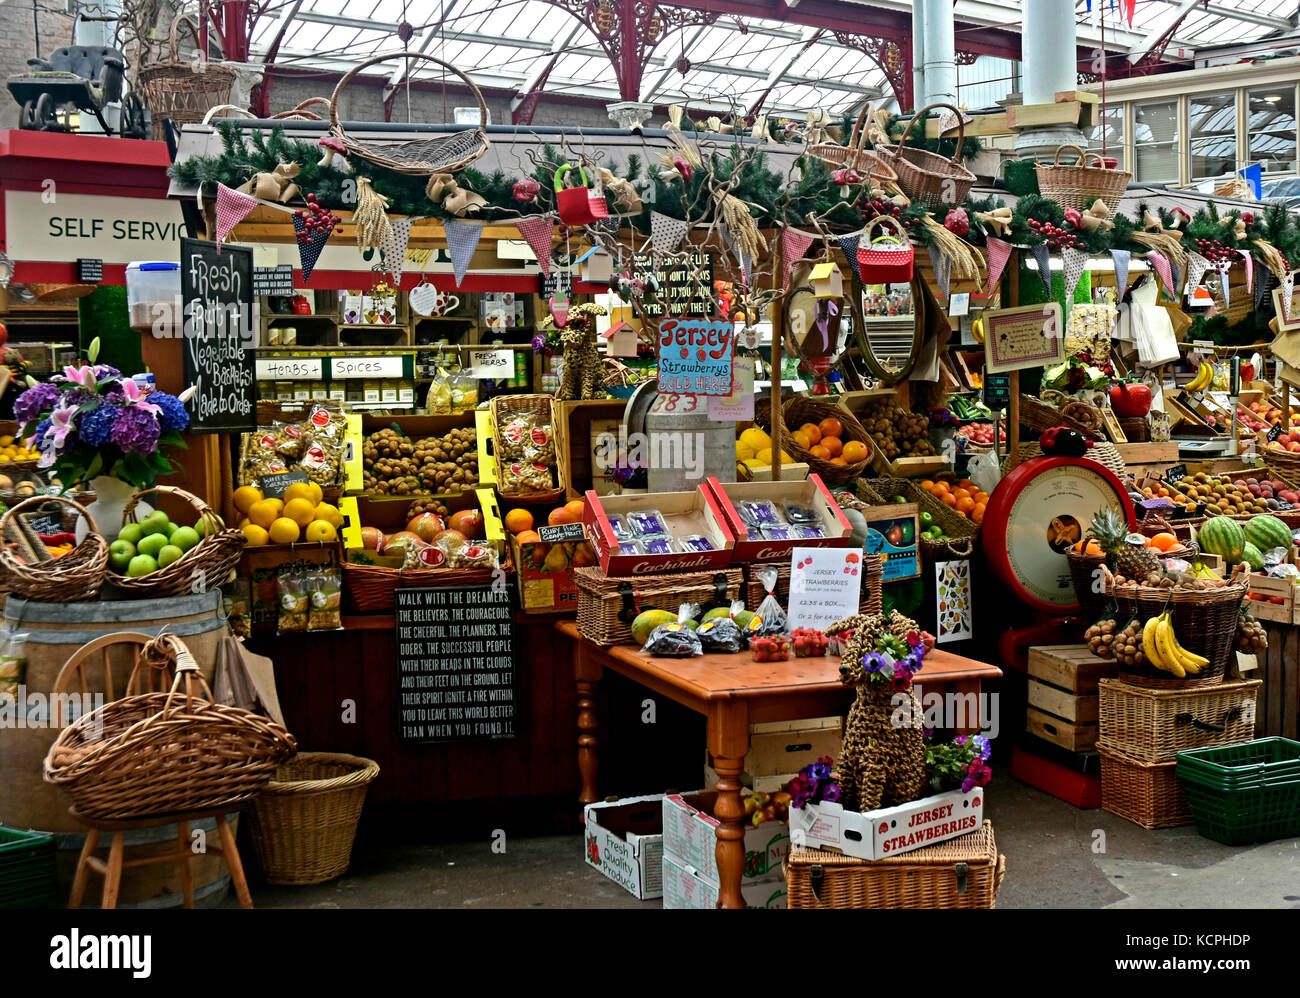 Central Market - St Helier - Channel Isles - covered market - circa 1882 - fruit vegetables flowers - local produce - Stock Image